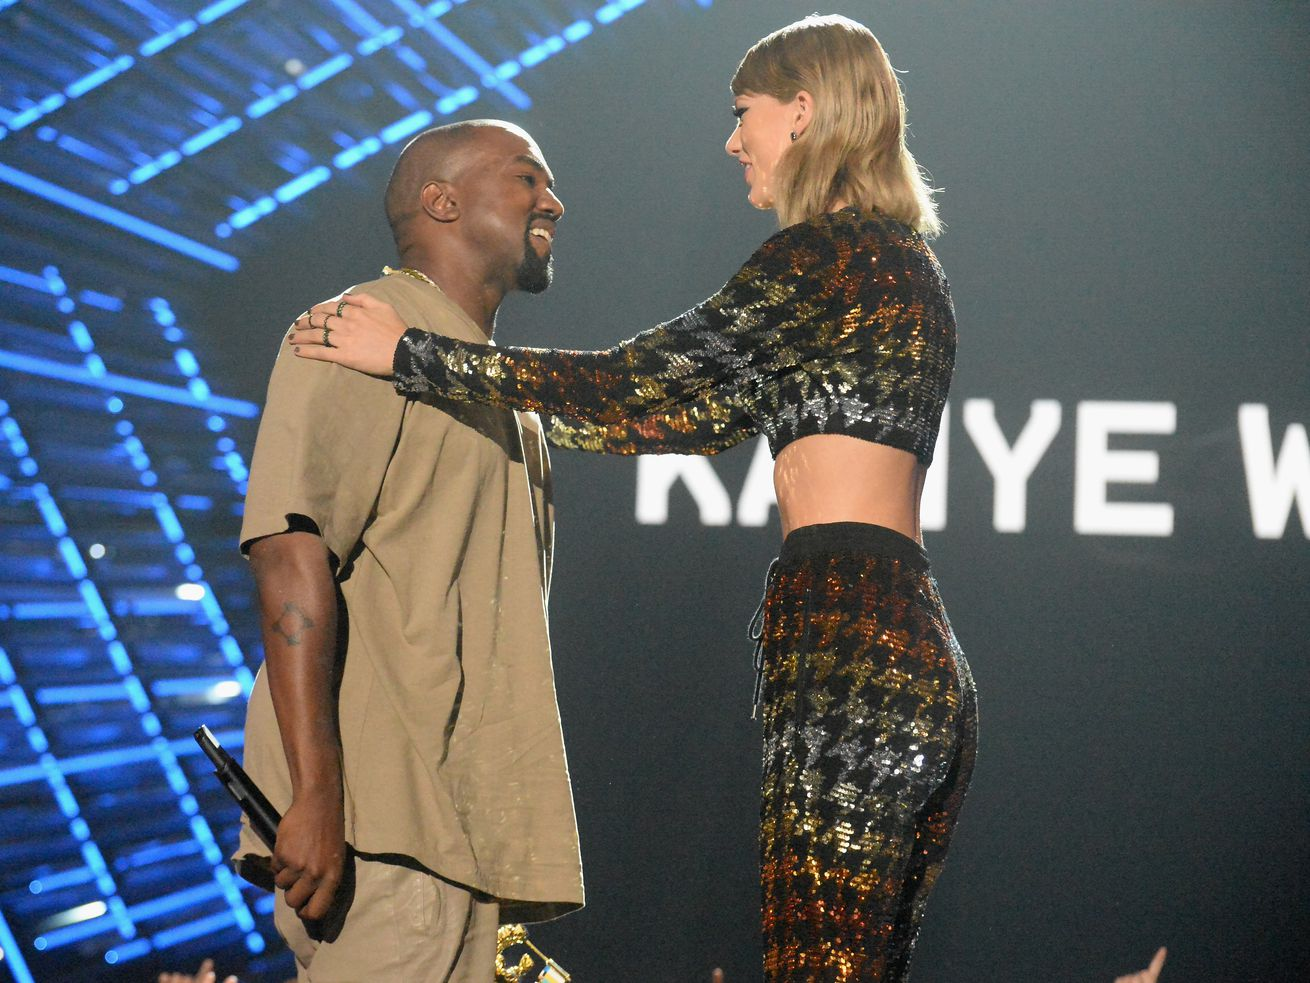 Newly Leaked Footage Shows Taylor Swift And Kanye West Talking